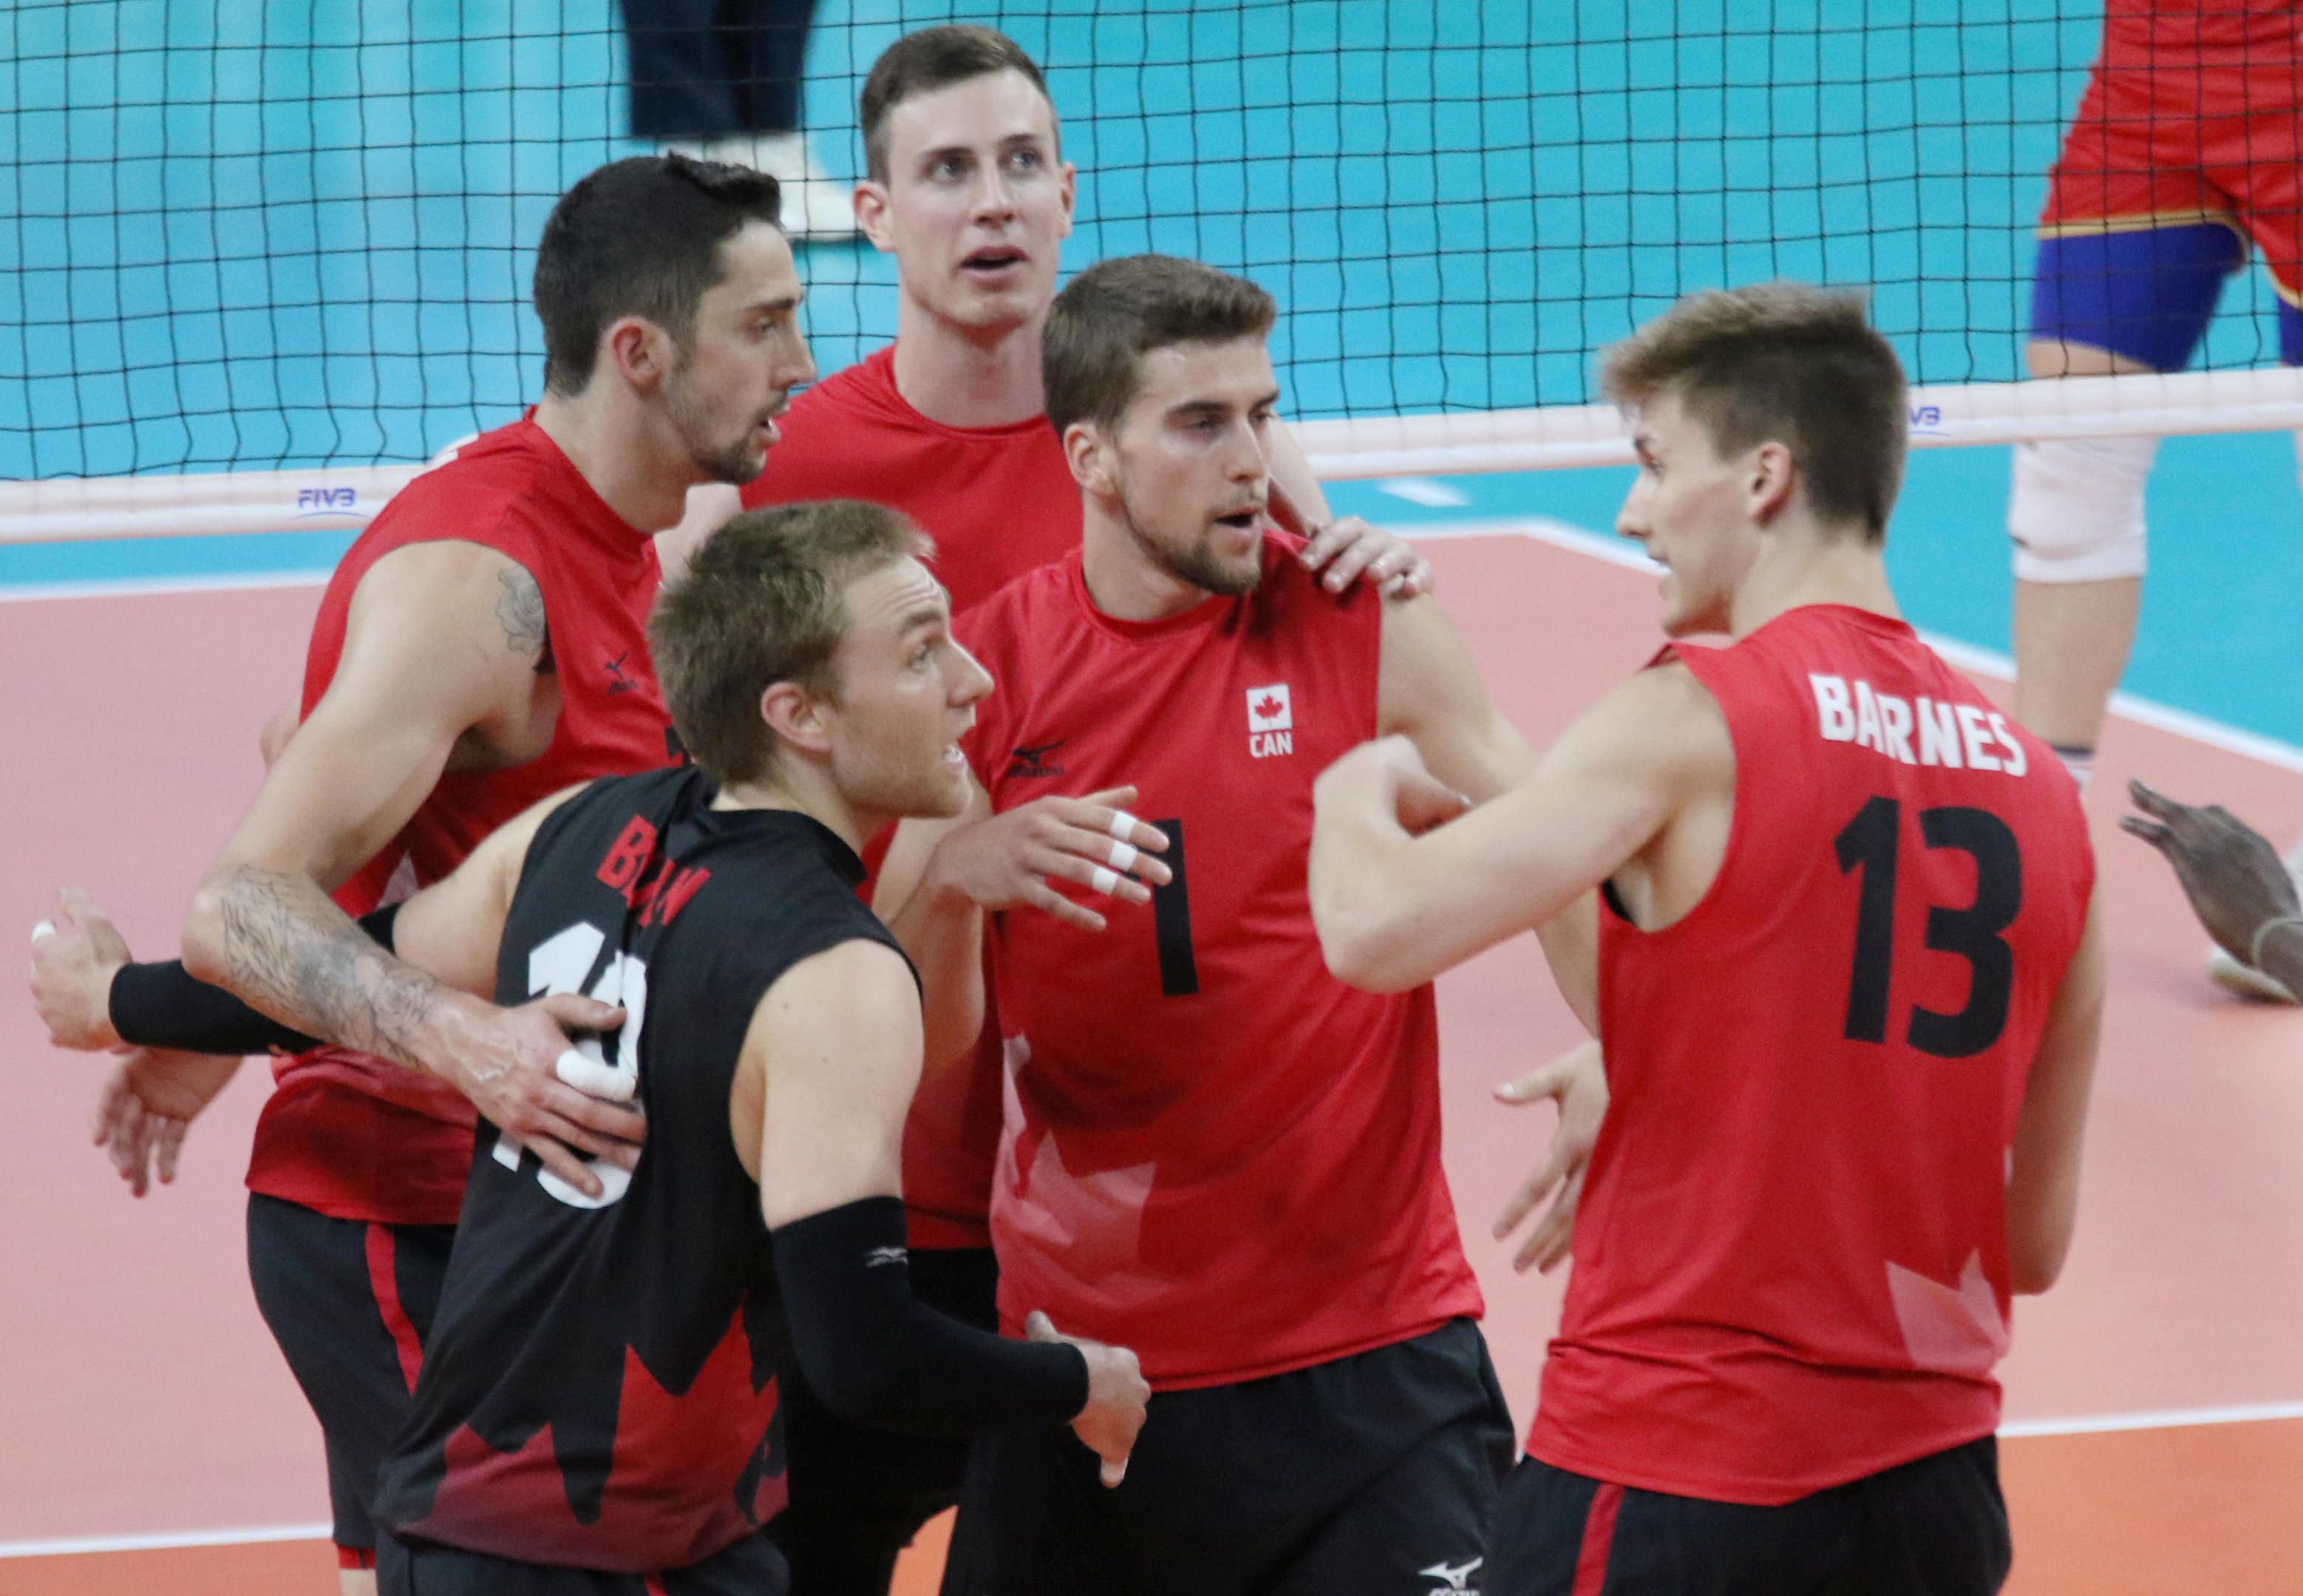 Fivb Announces Challenger Cup Will Align With Nations League Volleyball News Challenger League